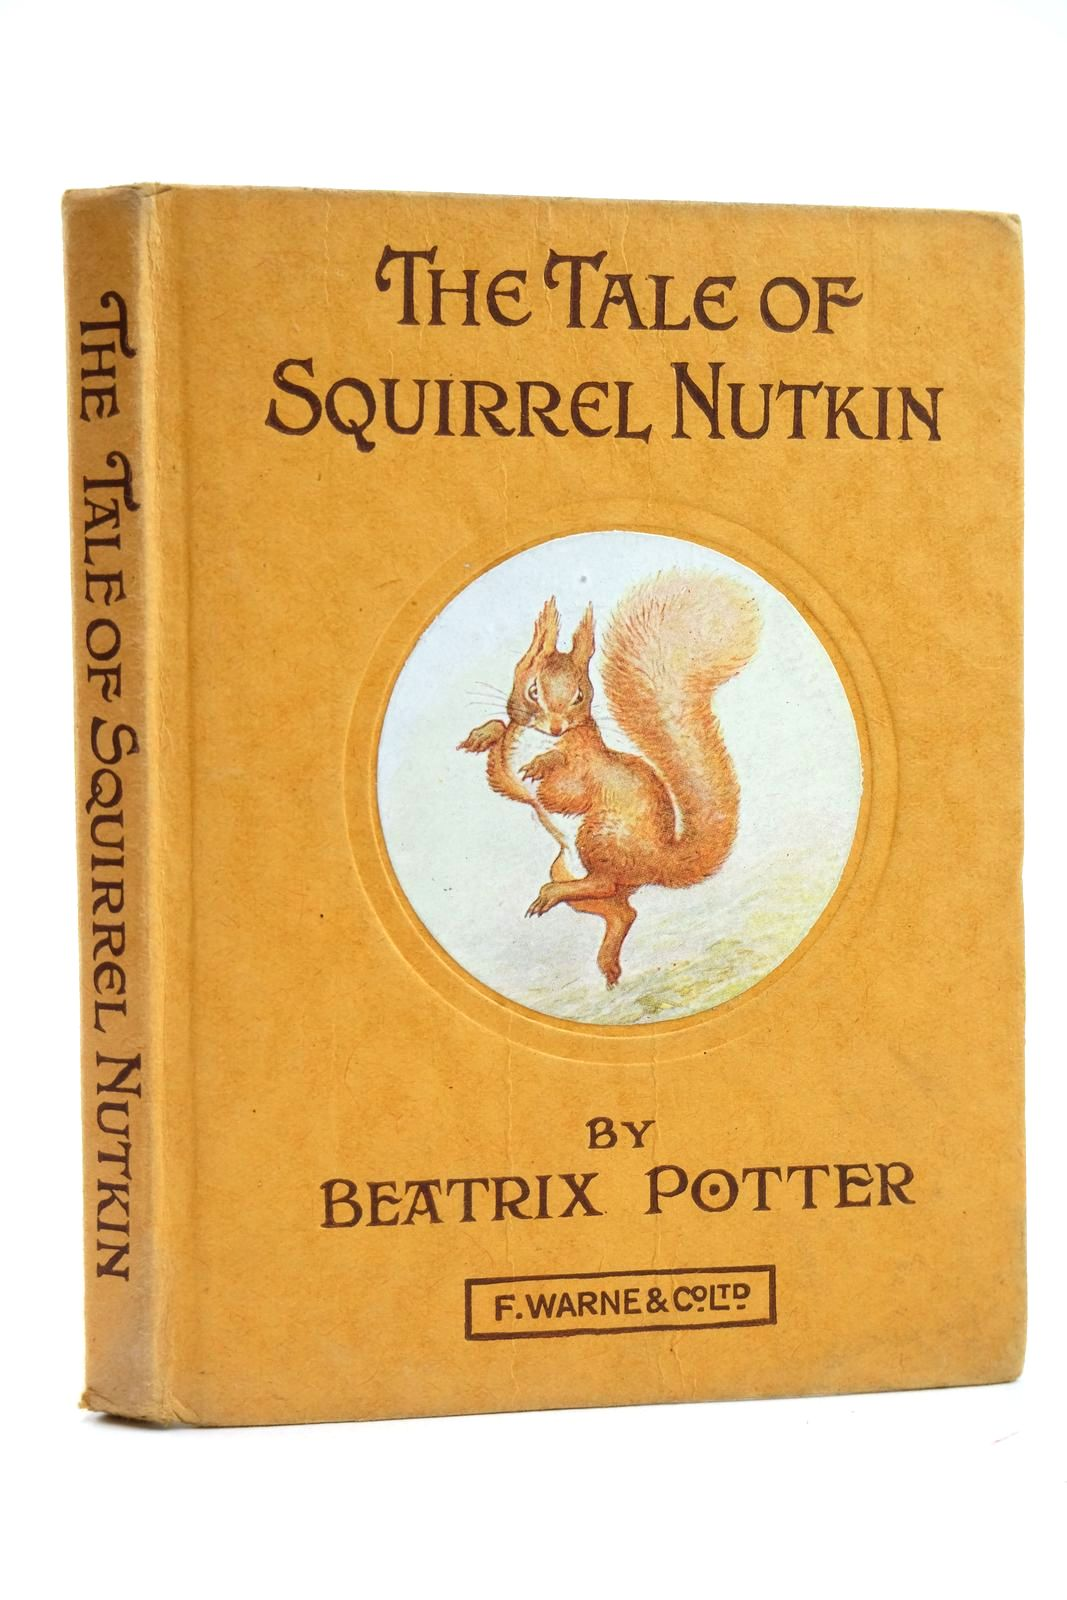 Photo of THE TALE OF SQUIRREL NUTKIN written by Potter, Beatrix illustrated by Potter, Beatrix published by Frederick Warne & Co Ltd. (STOCK CODE: 2131889)  for sale by Stella & Rose's Books